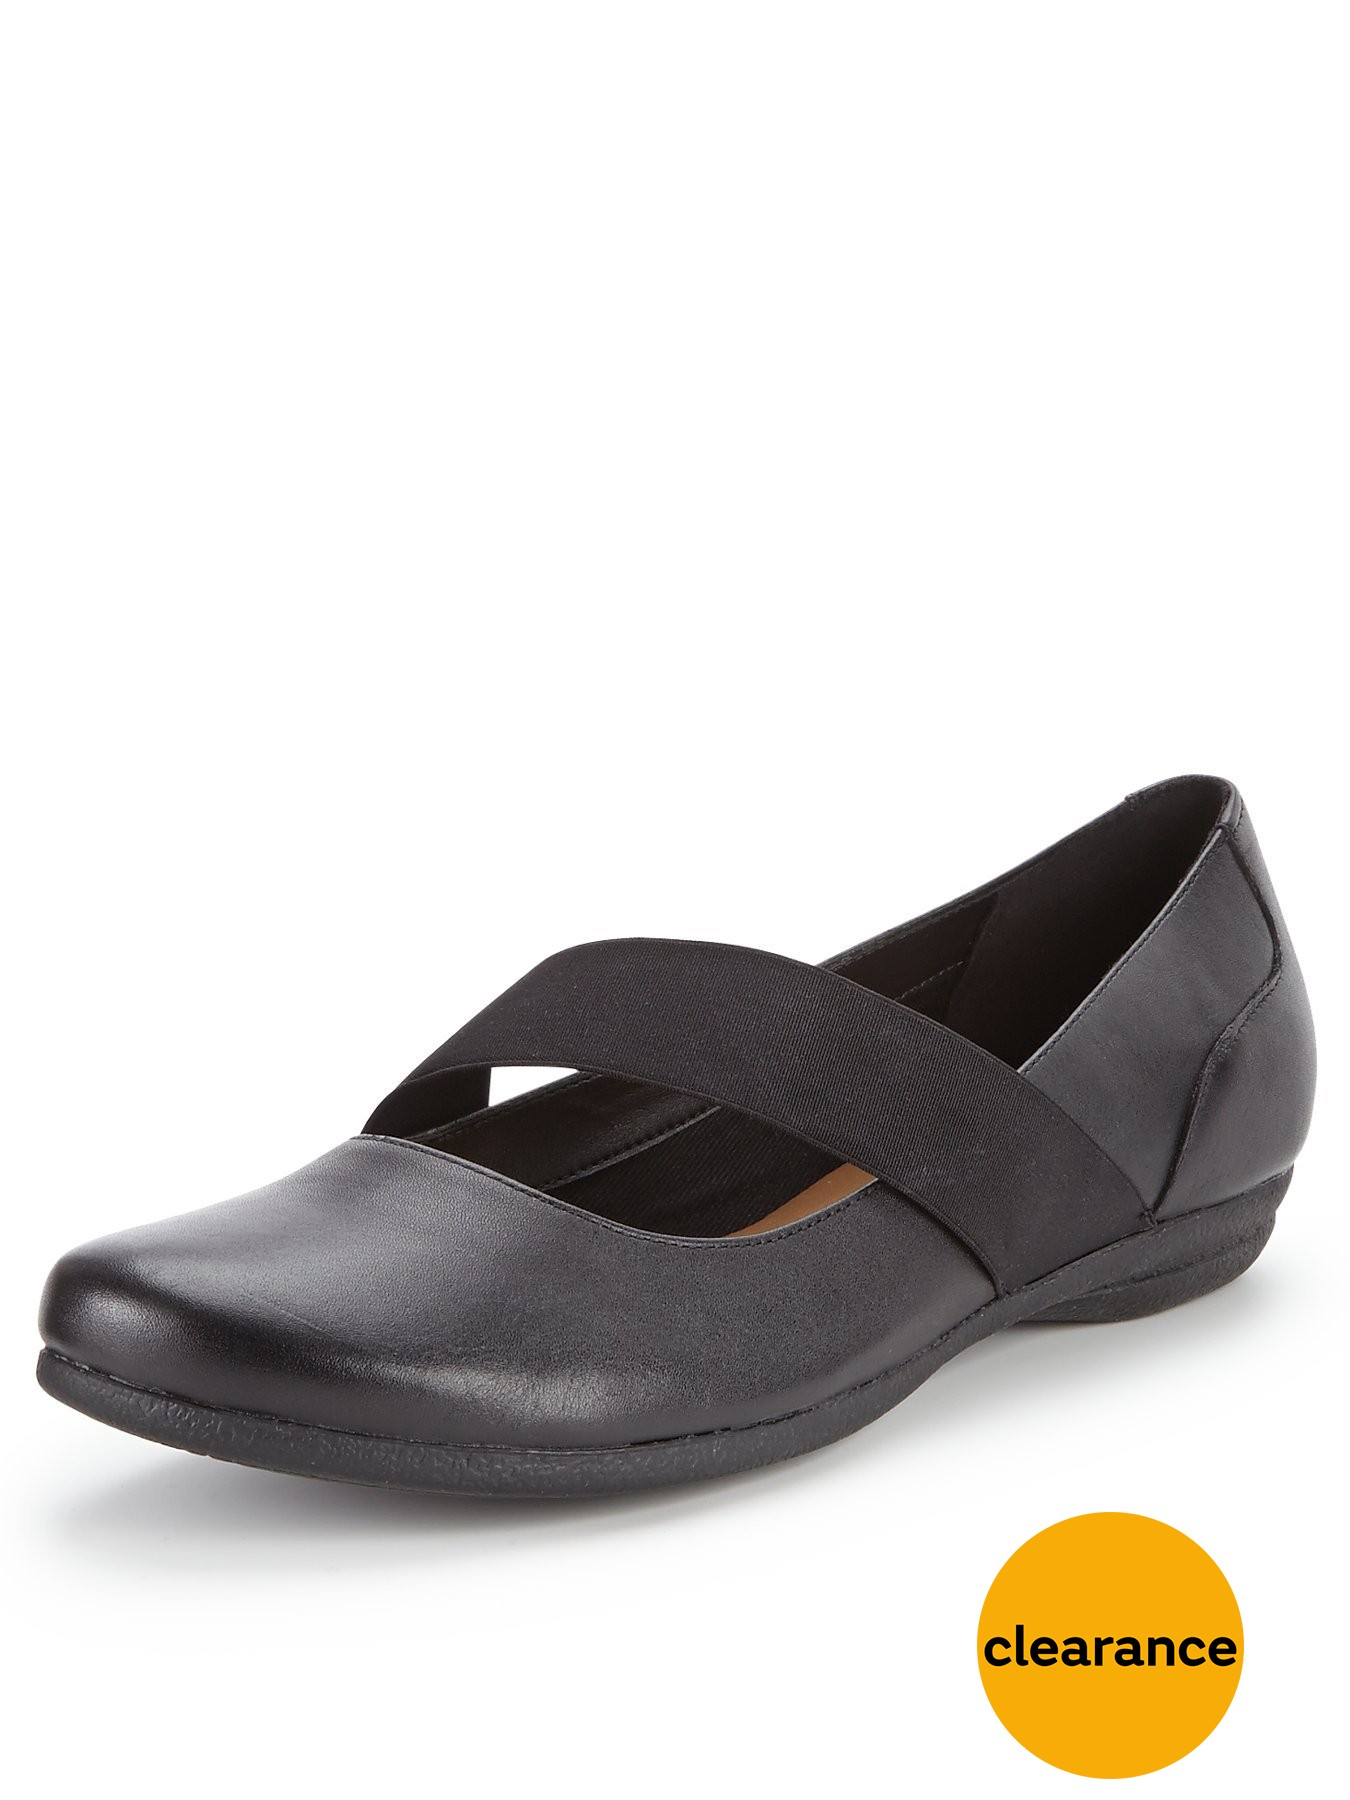 Clarks Discovery Ritz Mary Jane Flat Shoes 1458050368 Women's Shoes Clarks Flats